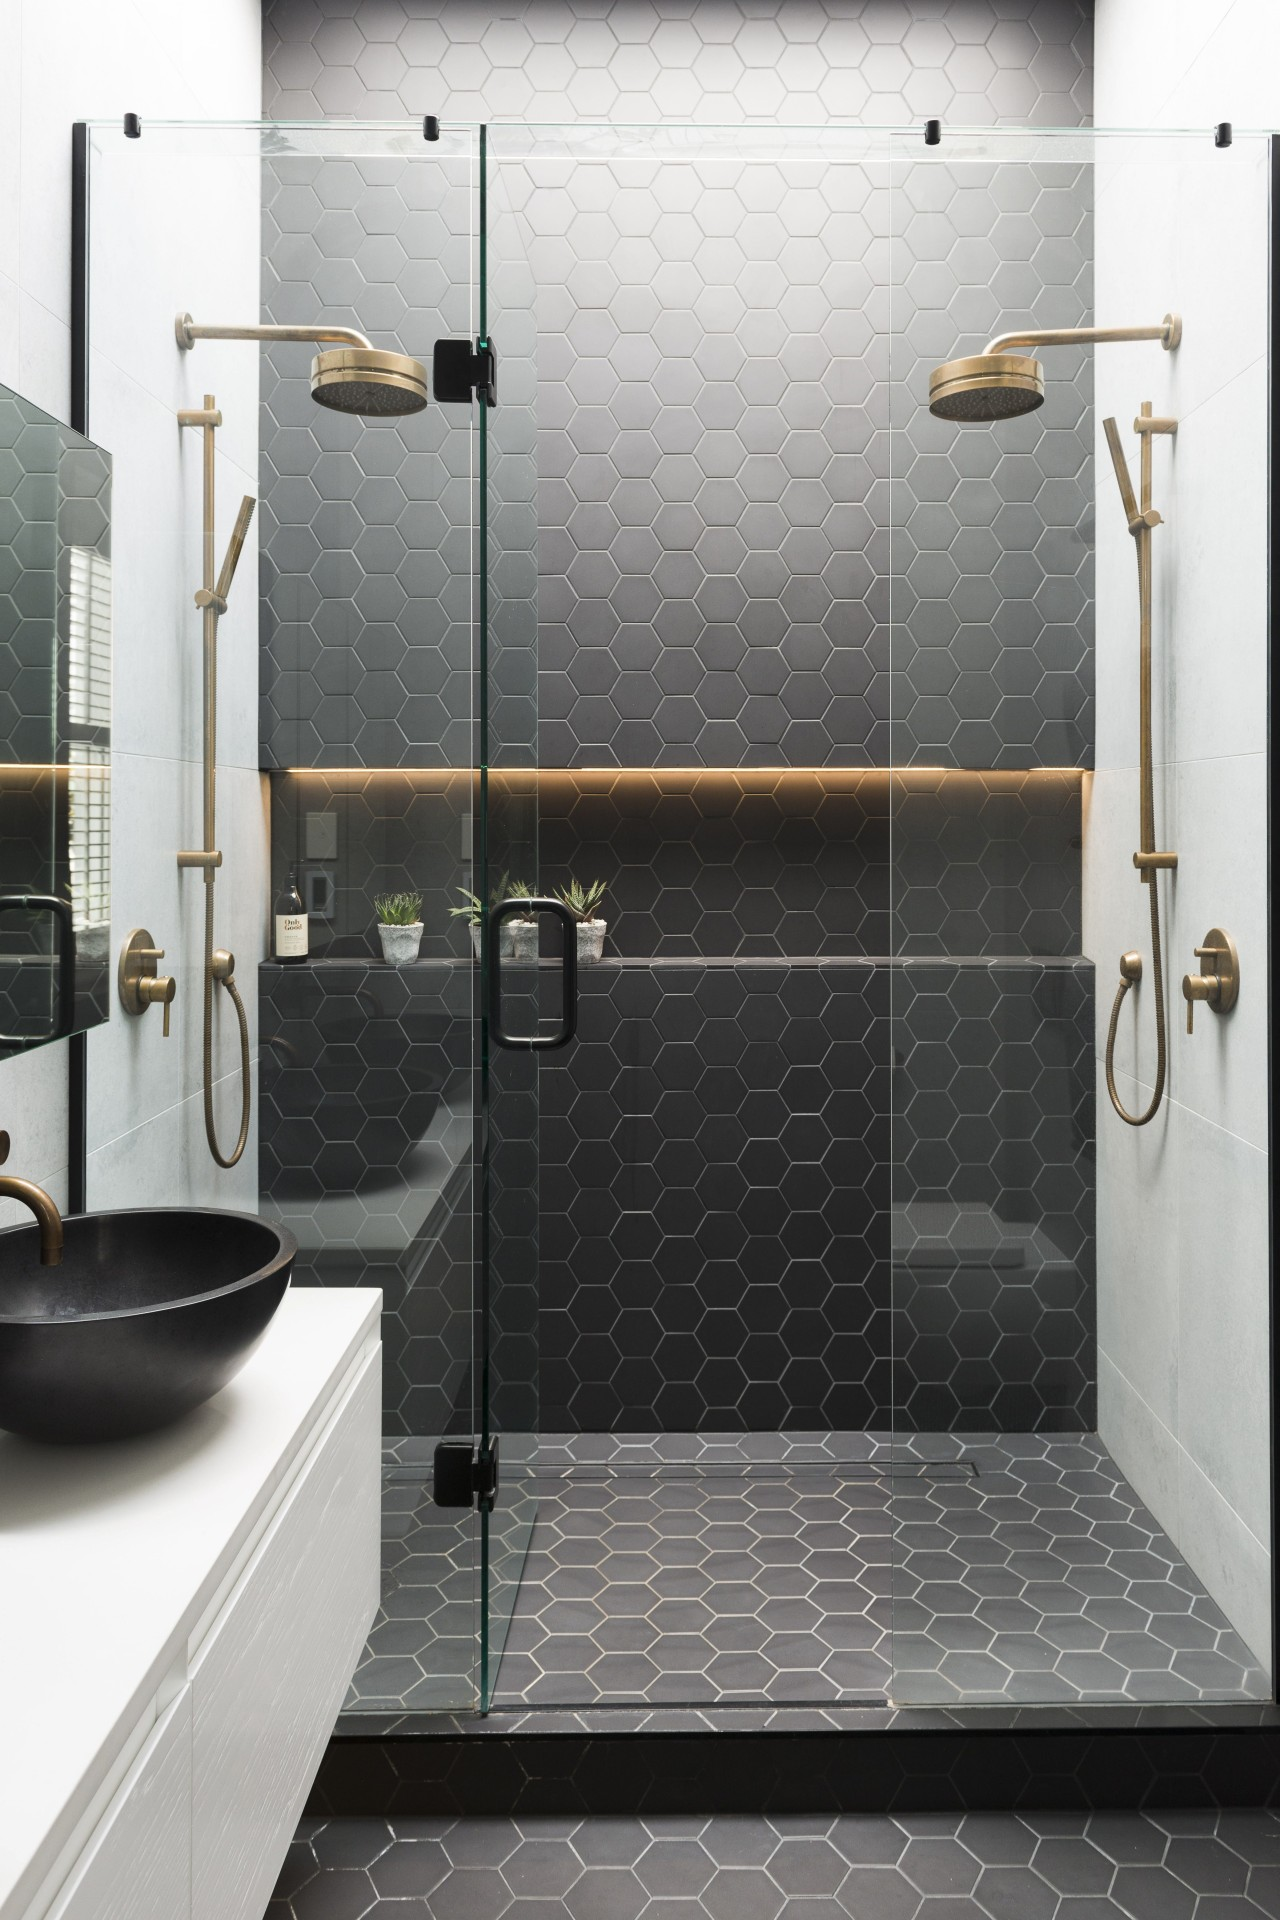 Caro Design bathroom, floor, flooring, plumbing fixture, shower, tap, tile, wall, gray, white, black